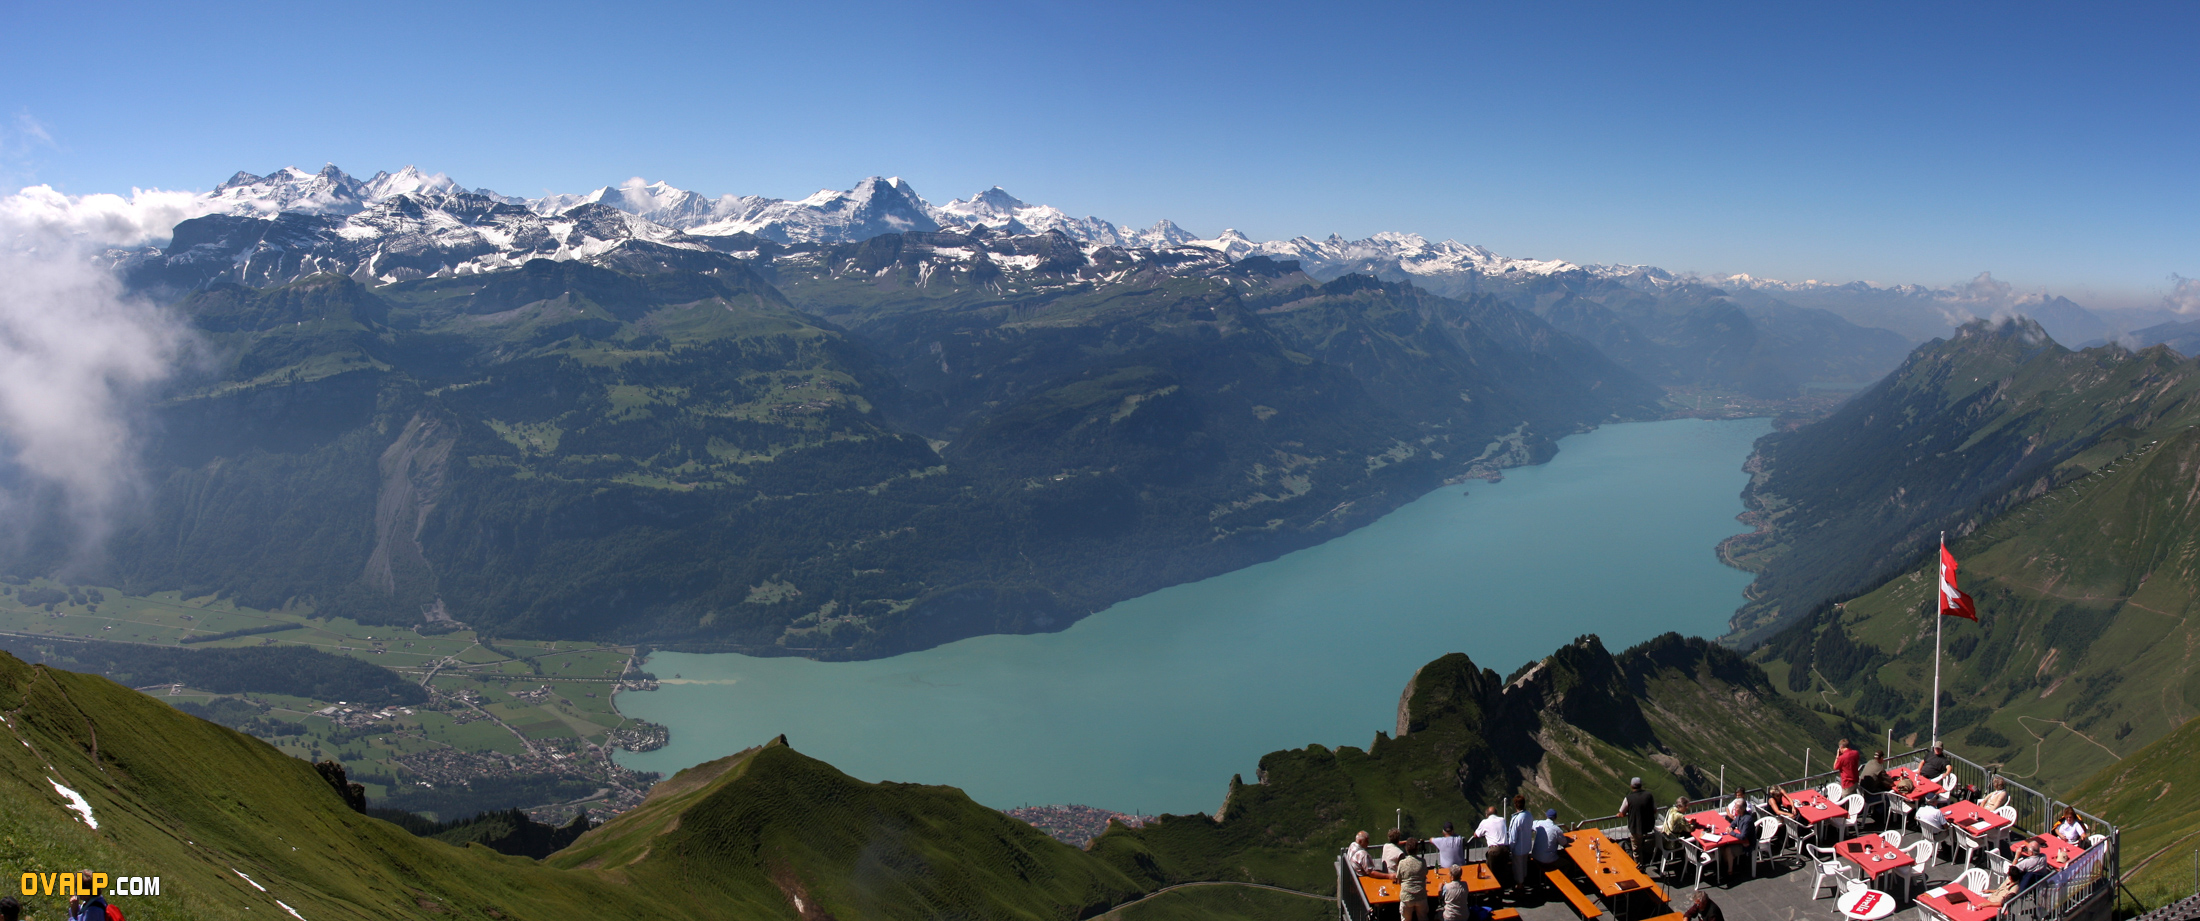 Pano Suisse